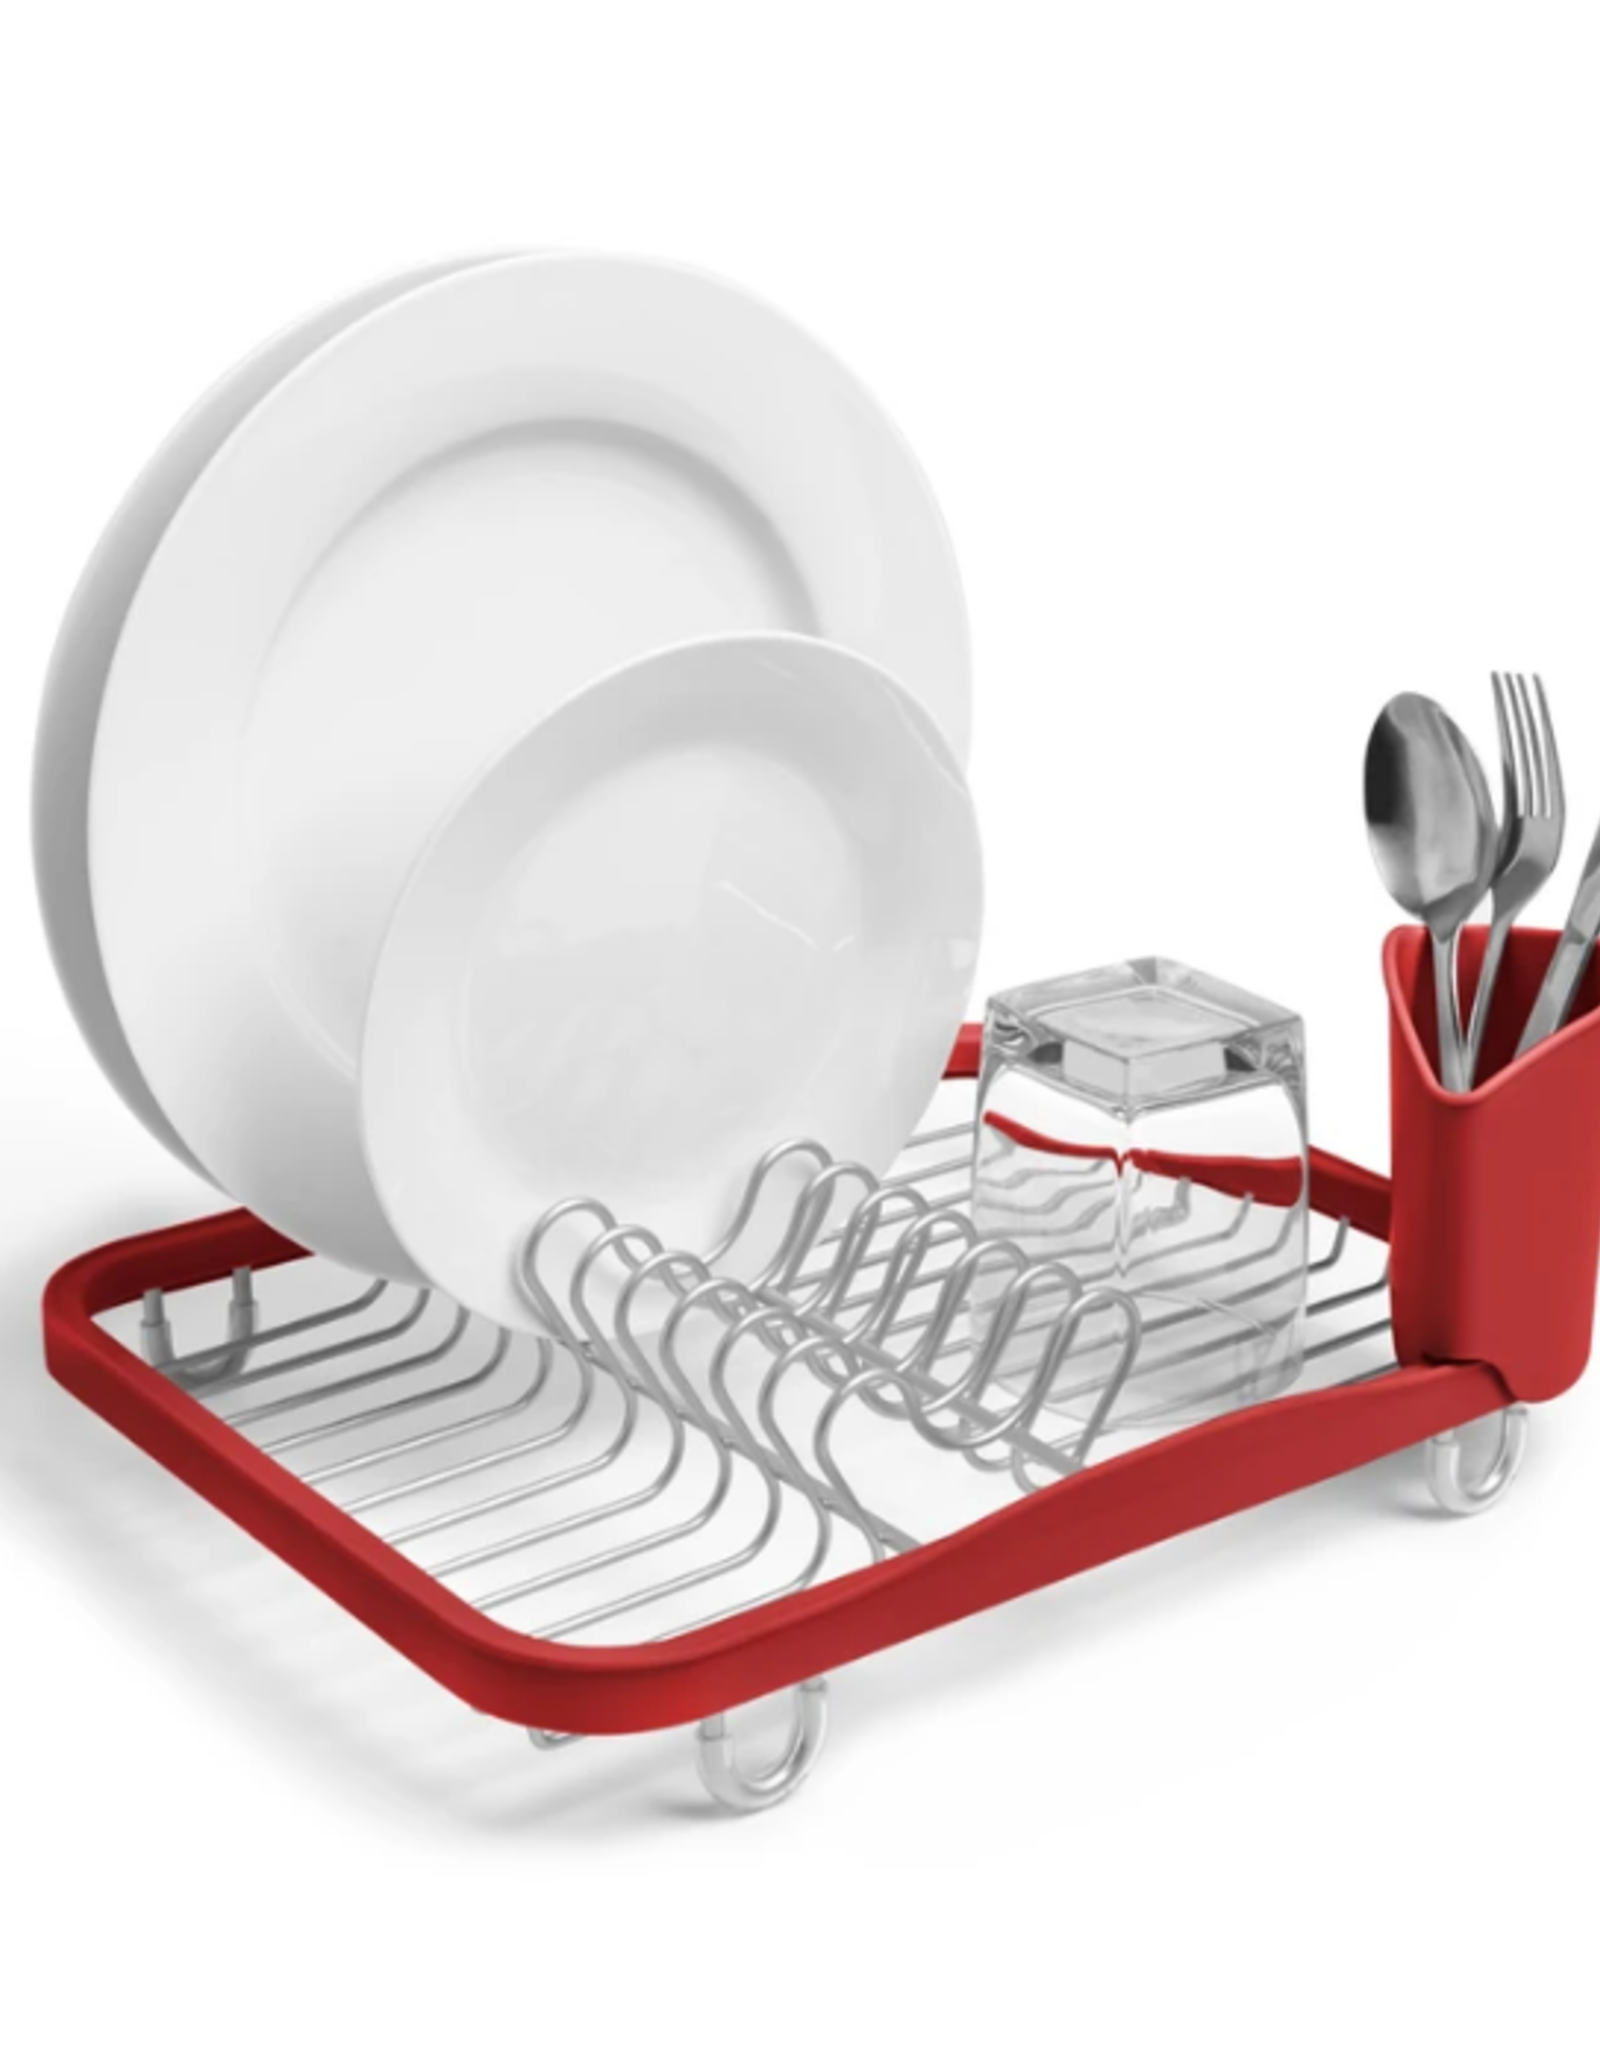 Umbra In-Sink Dish Rack, Red